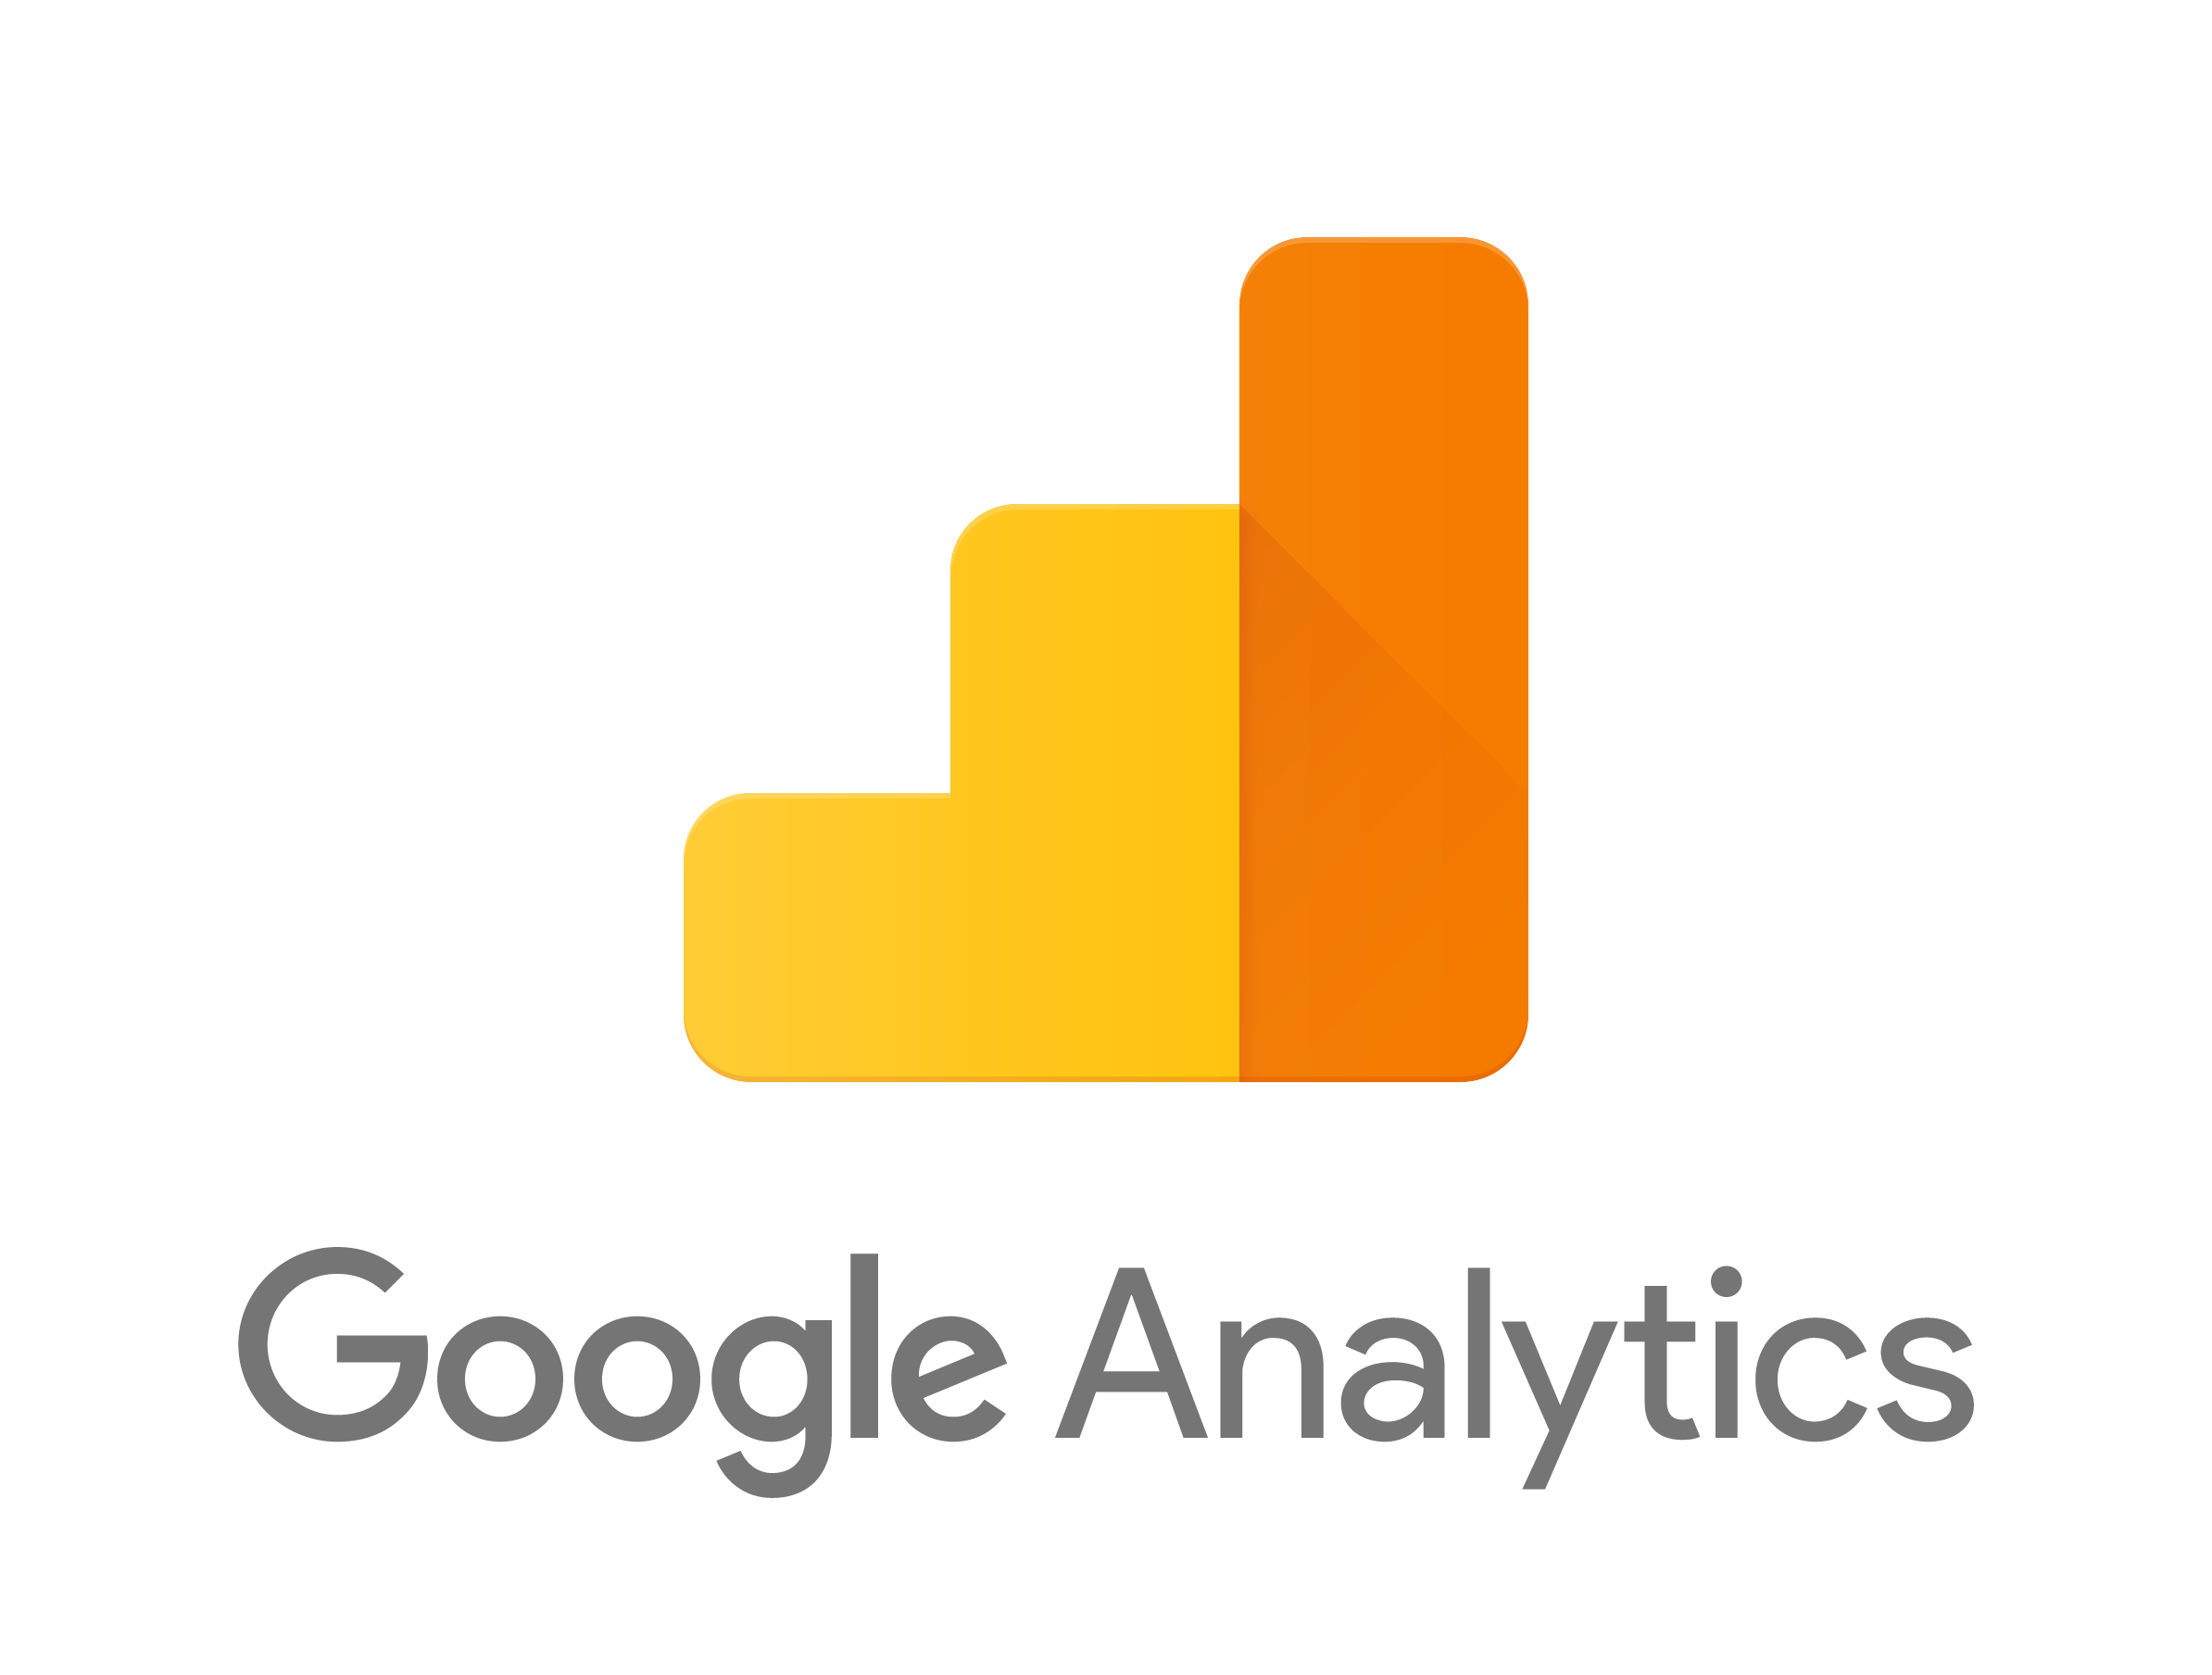 Google analytics for web traffic monitoring